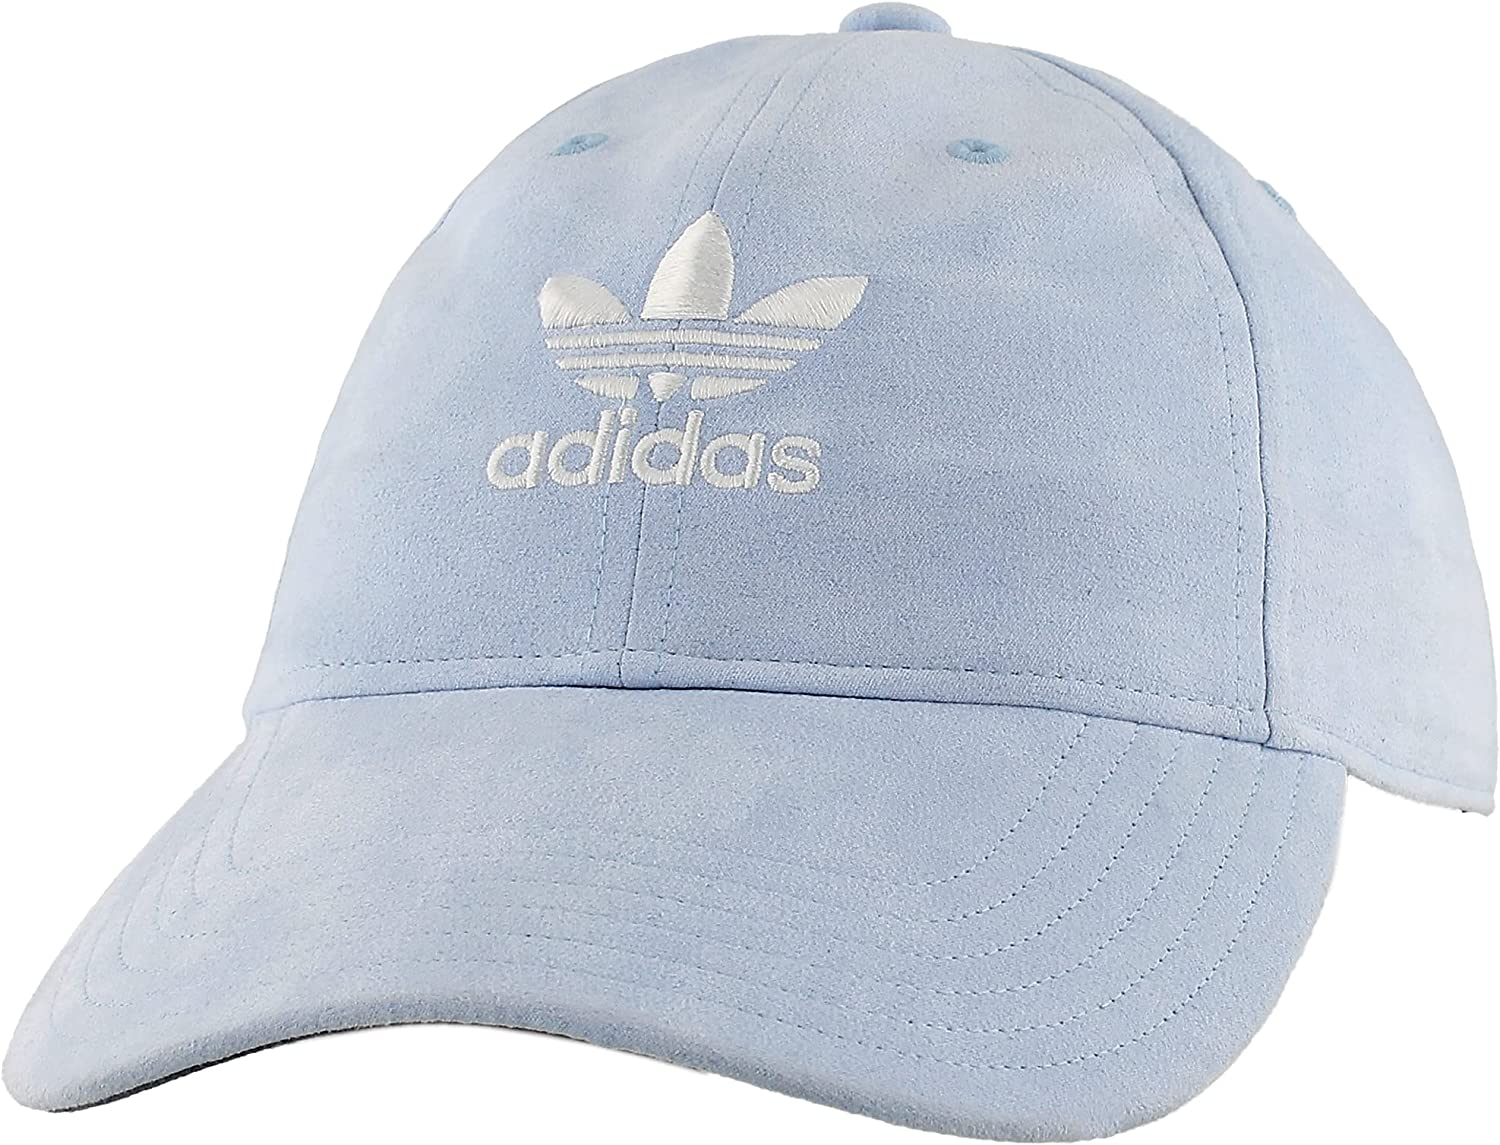 adidas Originals Women's Relaxed Plus Strapback Cap, Aero Blue Suede/White, ONE SIZE : Clothing, Shoes & Jewelry